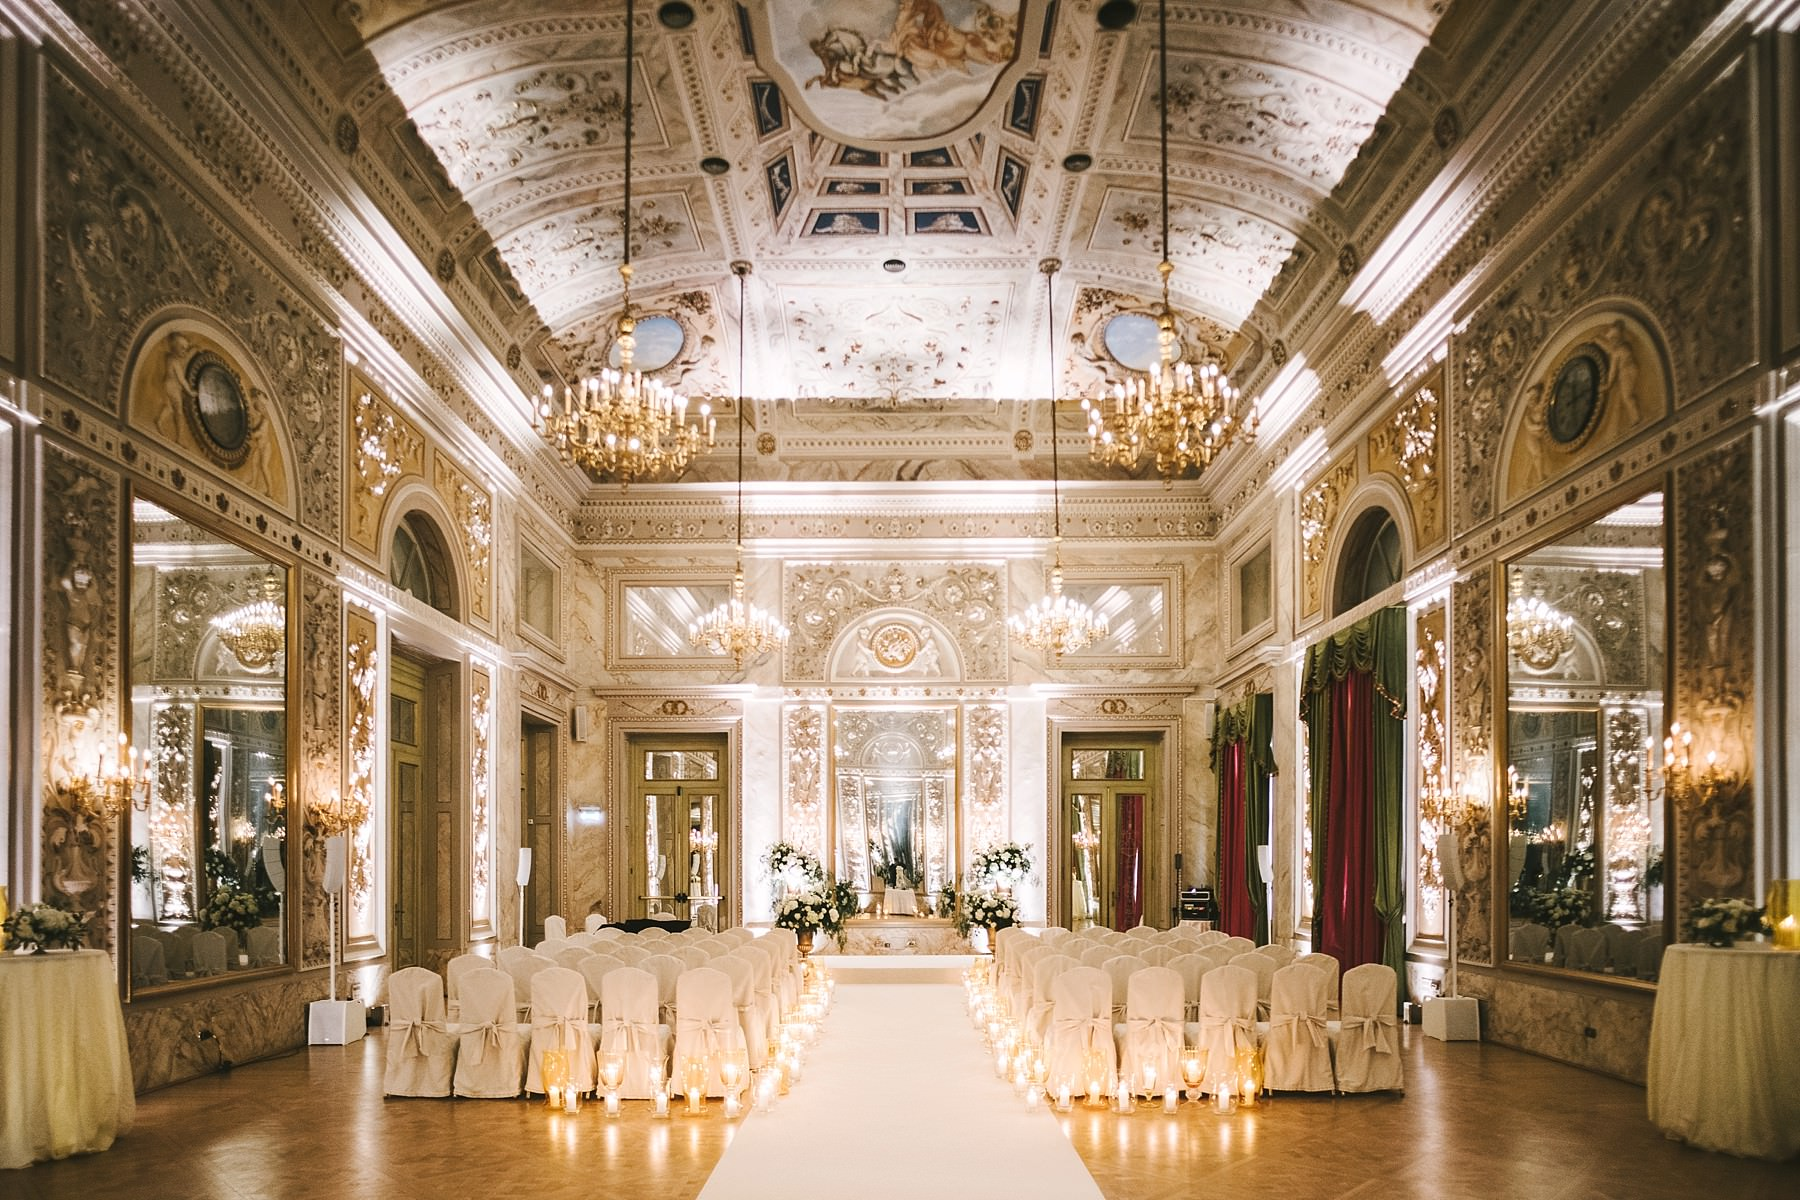 Lovely destination wedding ceremony at luxury hotel St. Regis Florence into Sala delle Feste ballroom